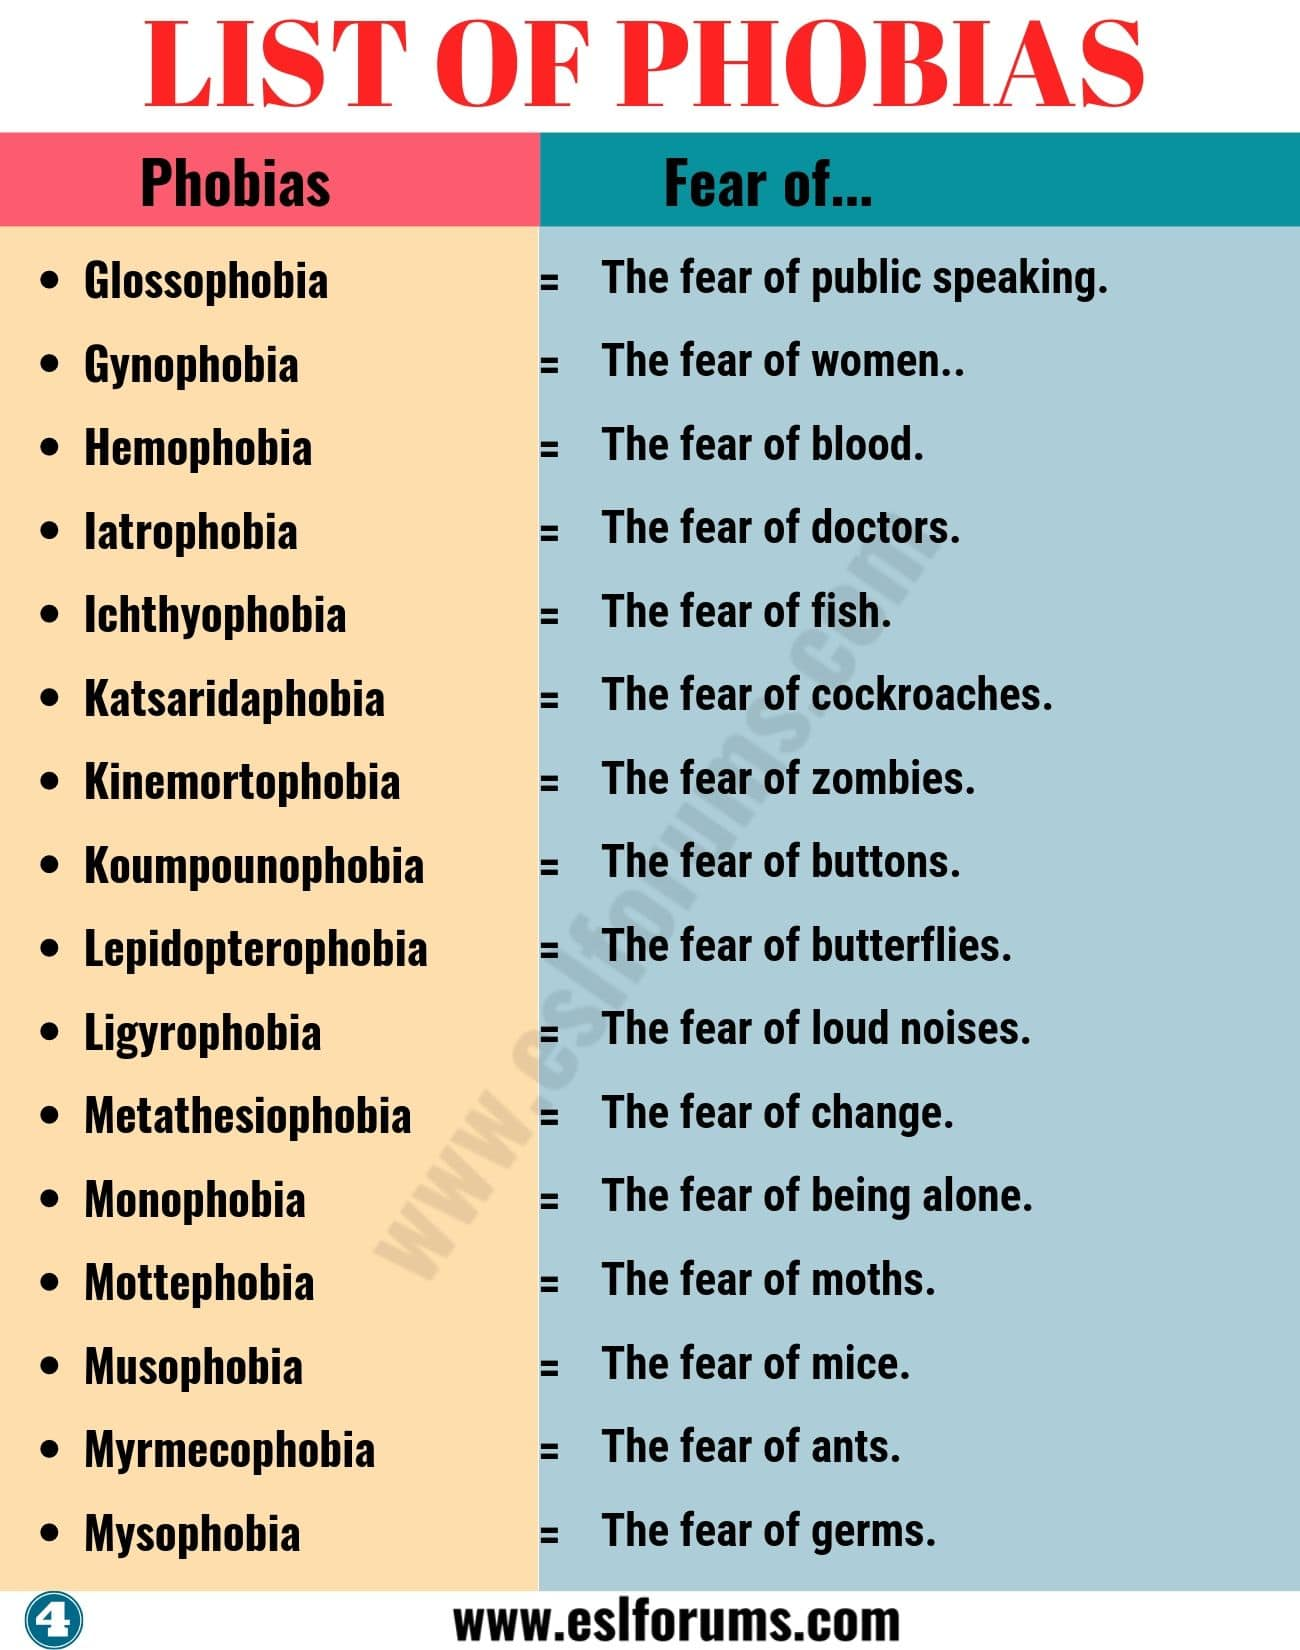 List of Phobias: Learn 105 Common Phobias of People around the World